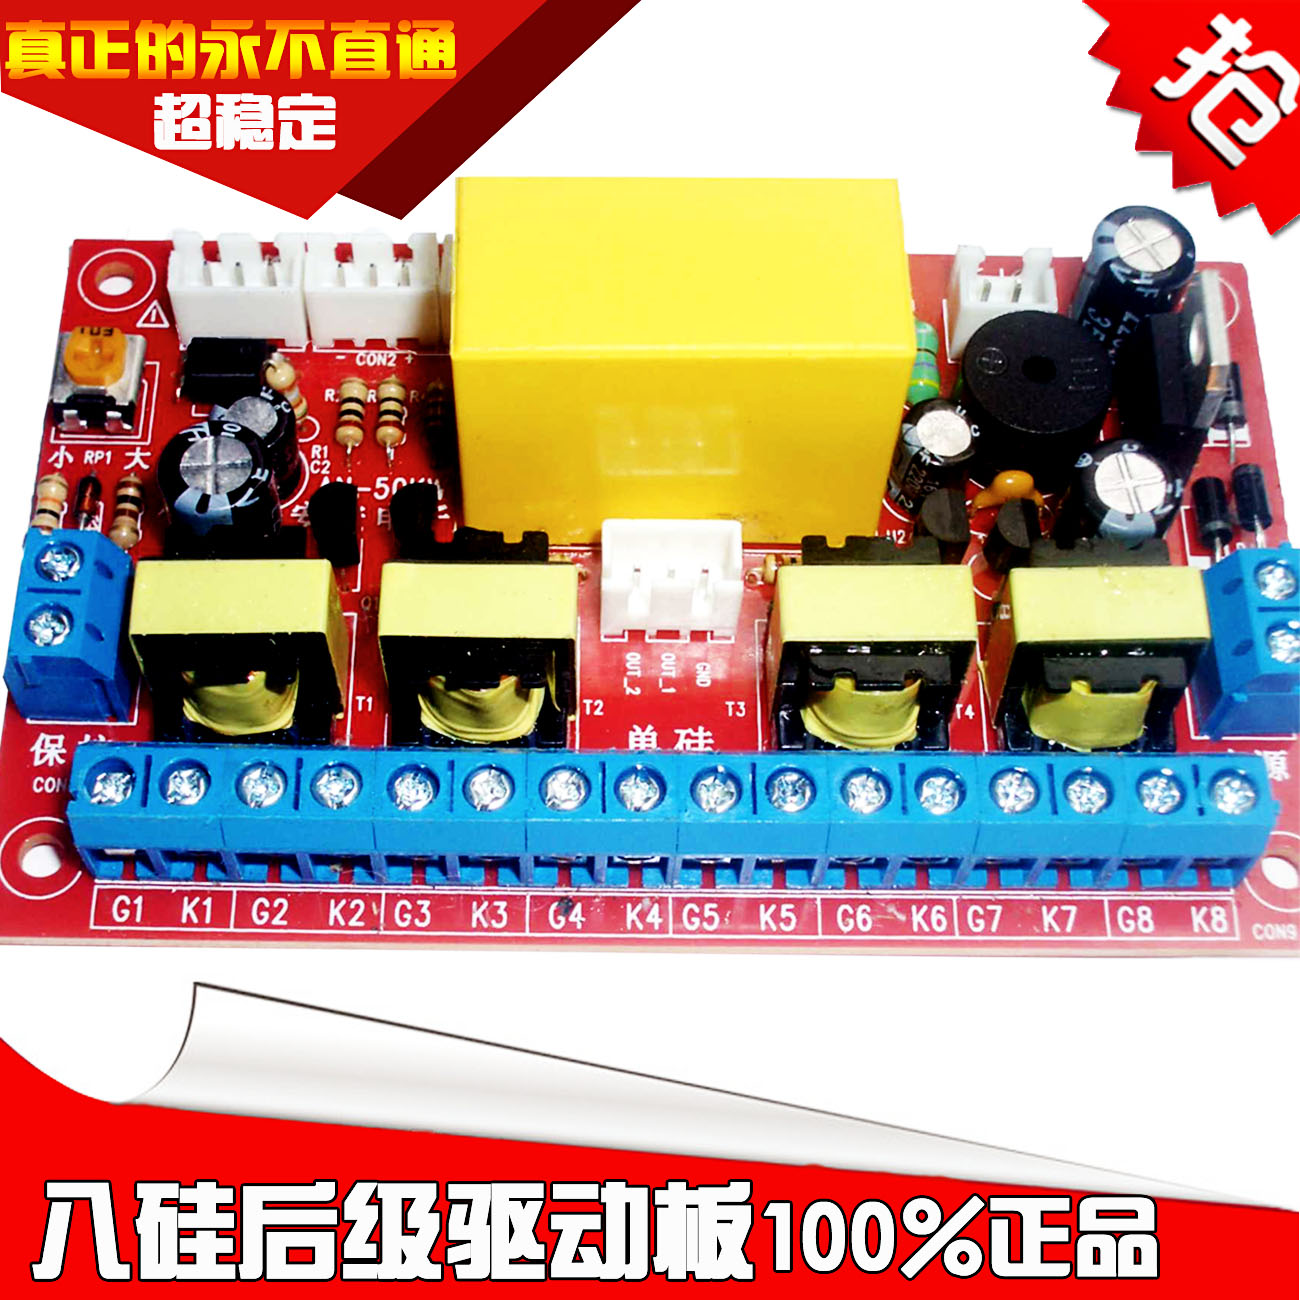 Eight Silicon Single Silicon Single Frequency Mixing Frequency Sweeping Driver Board Rear Stage Short Circuit ProtectionEight Silicon Single Silicon Single Frequency Mixing Frequency Sweeping Driver Board Rear Stage Short Circuit Protection